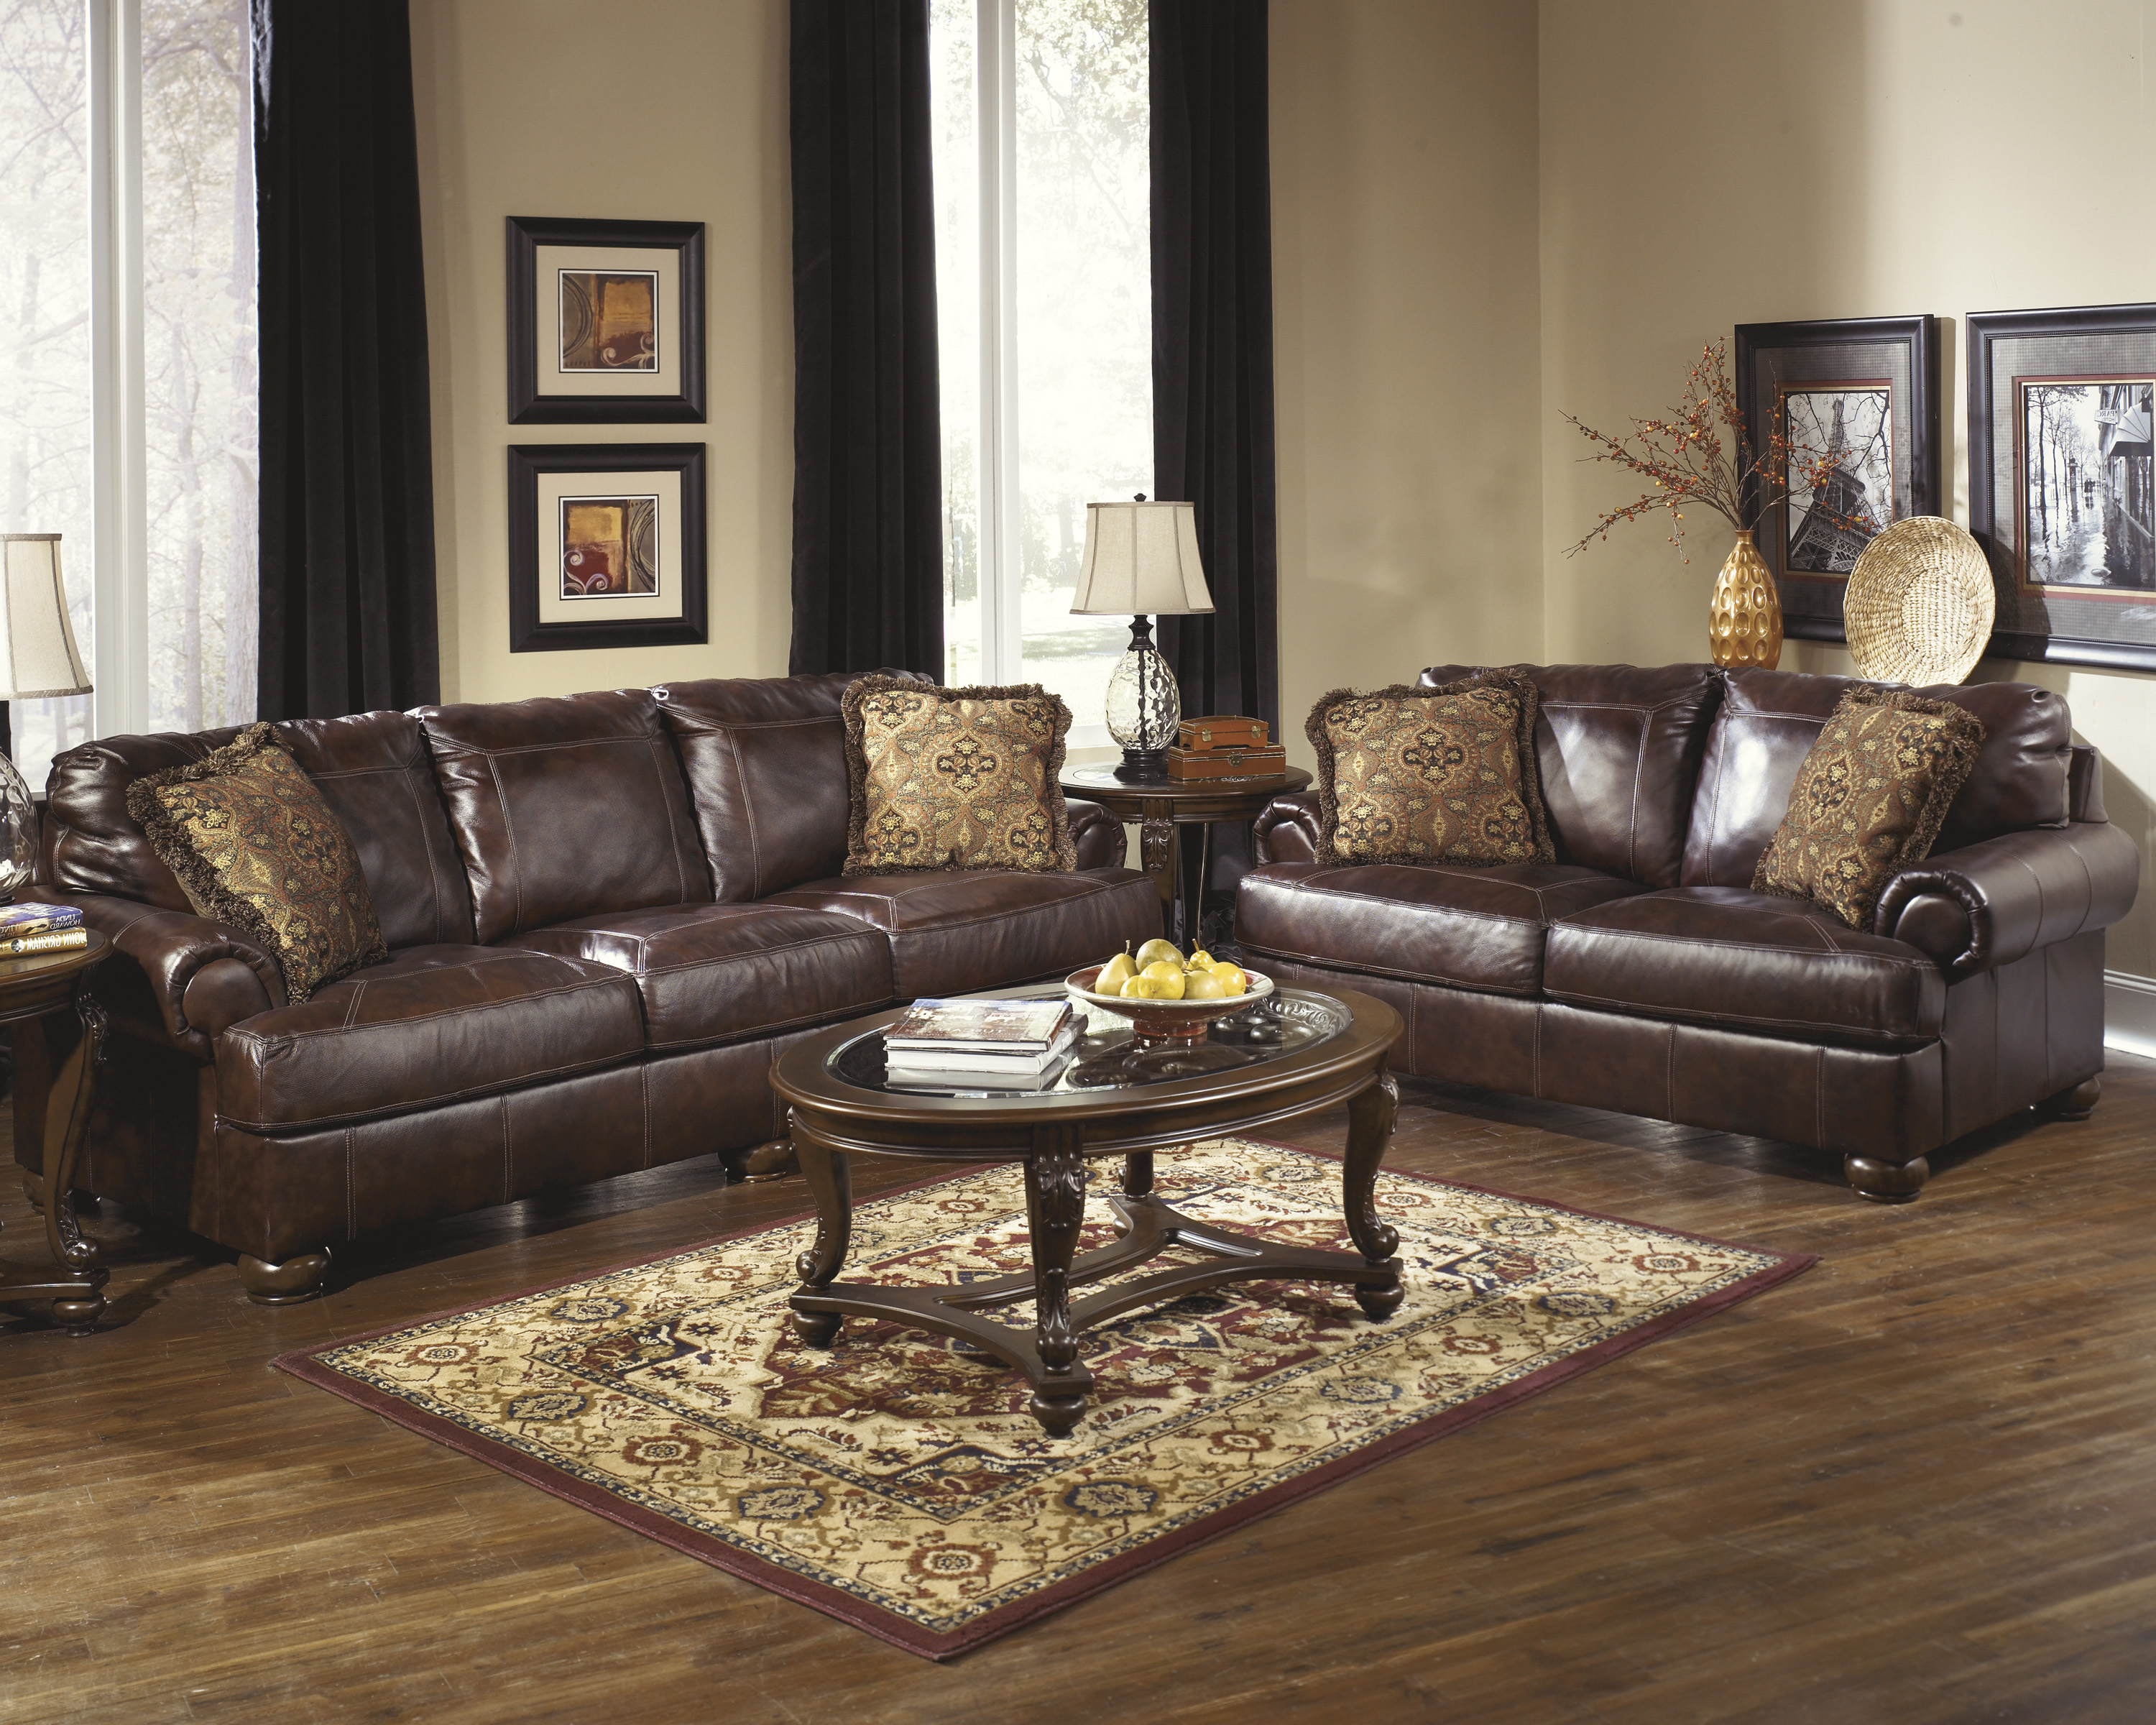 Recent Cheap Ashley Furniture Leather Sofa Sets In Glendale, Ca Regarding Living Room Sofas And Chairs (View 19 of 20)